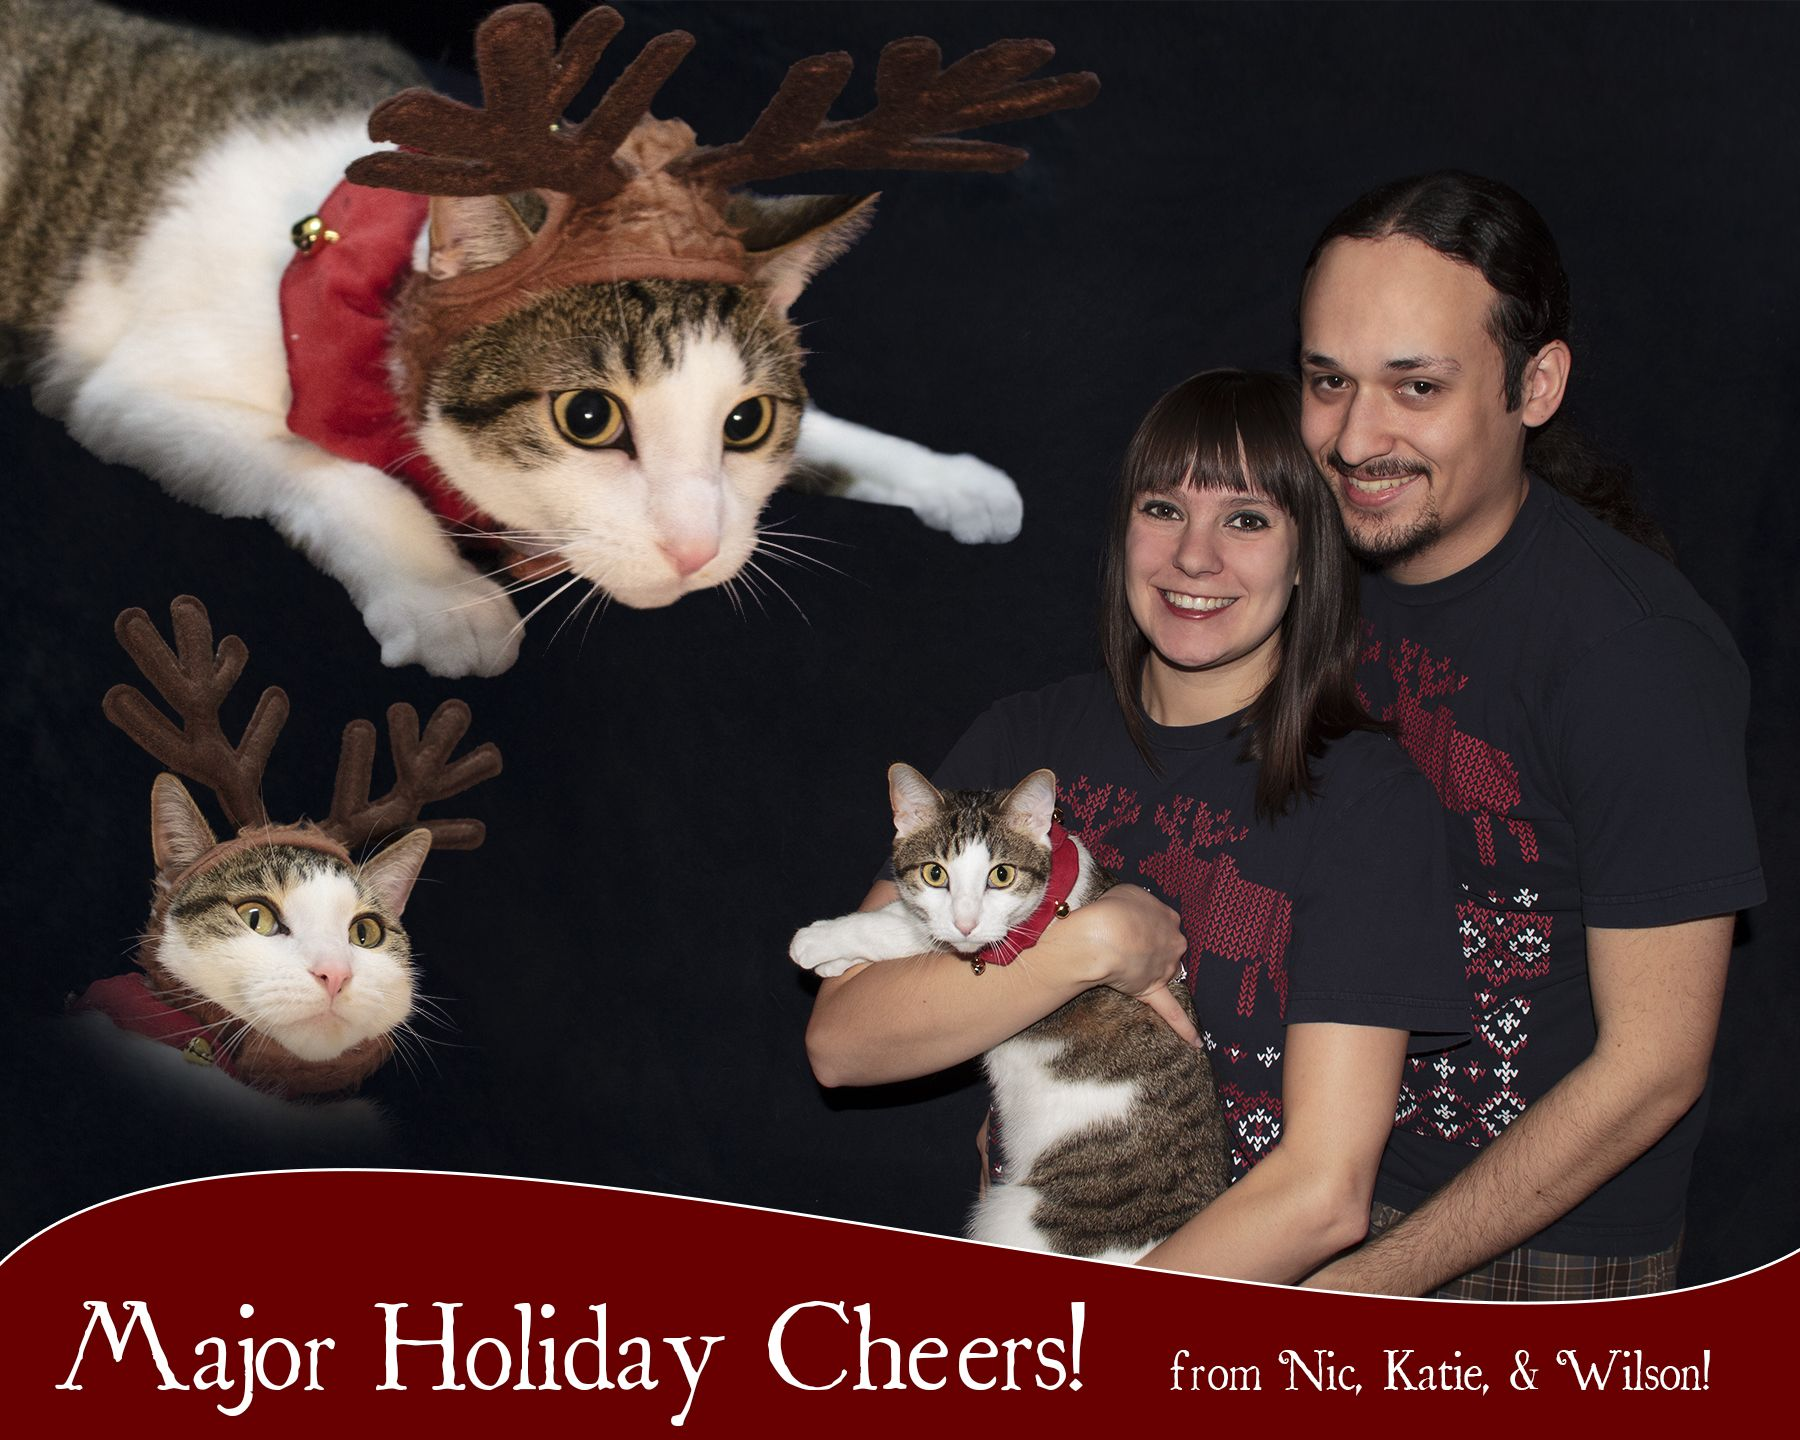 Our first family Christmas card Wilson our cat is the main